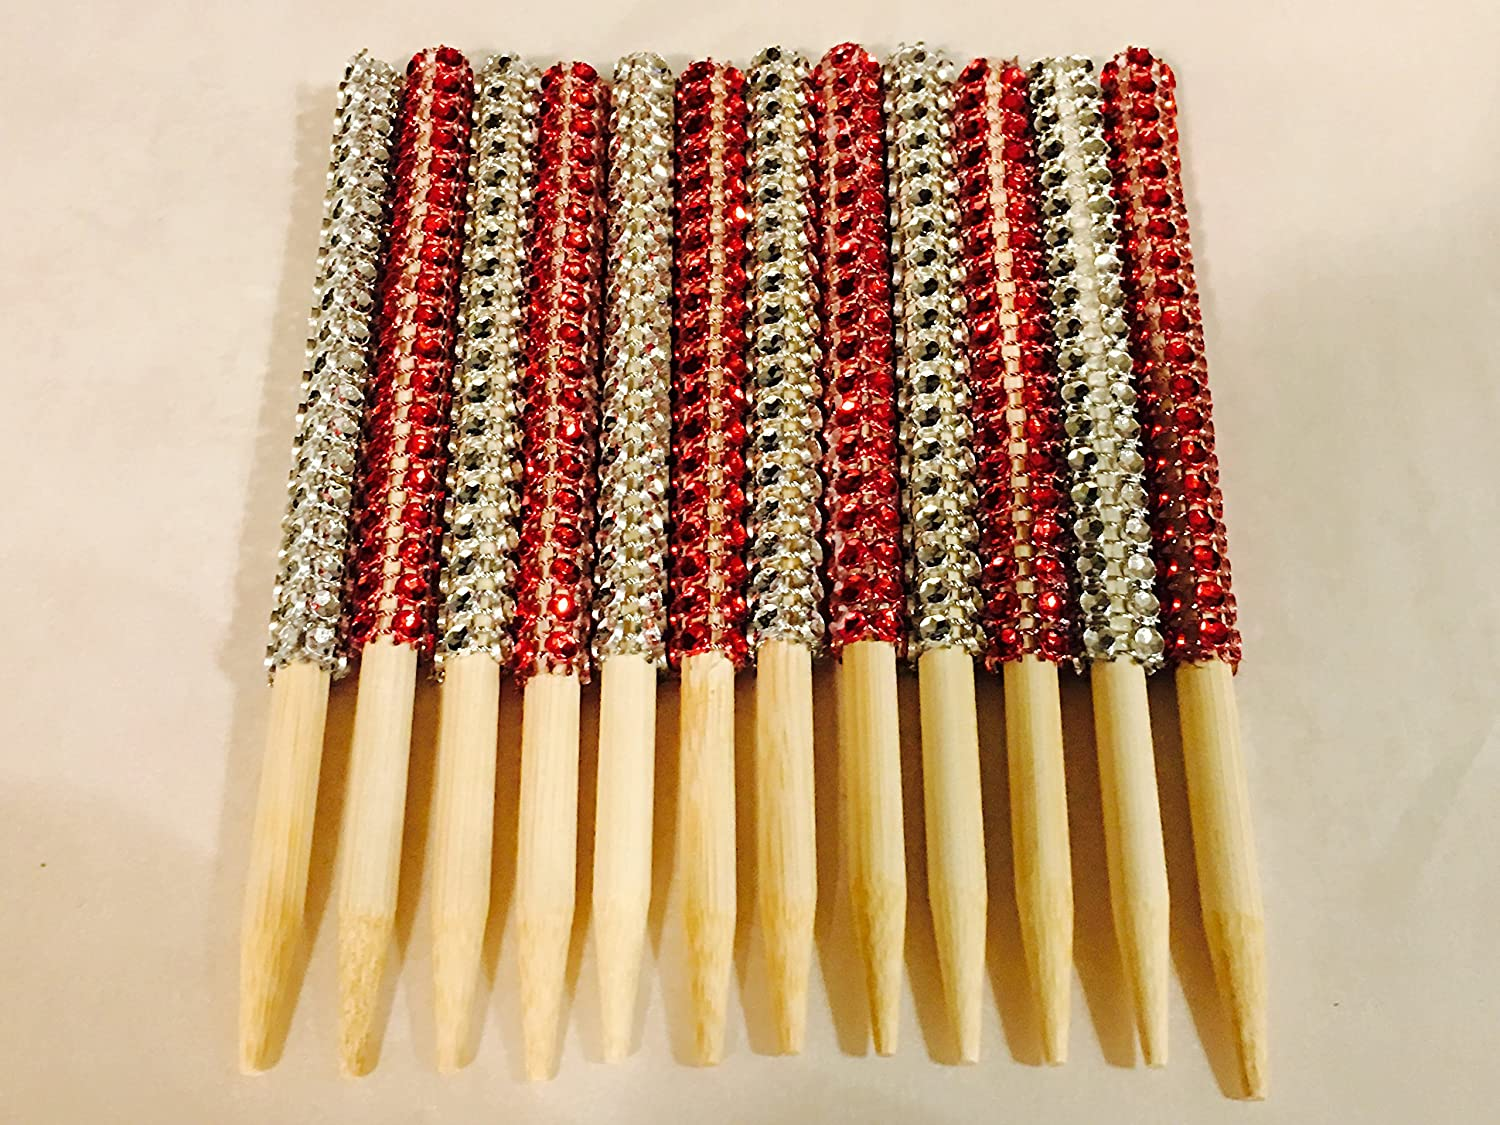 12 PC (6) Silver (6) Red Bling Candy Apple Sticks